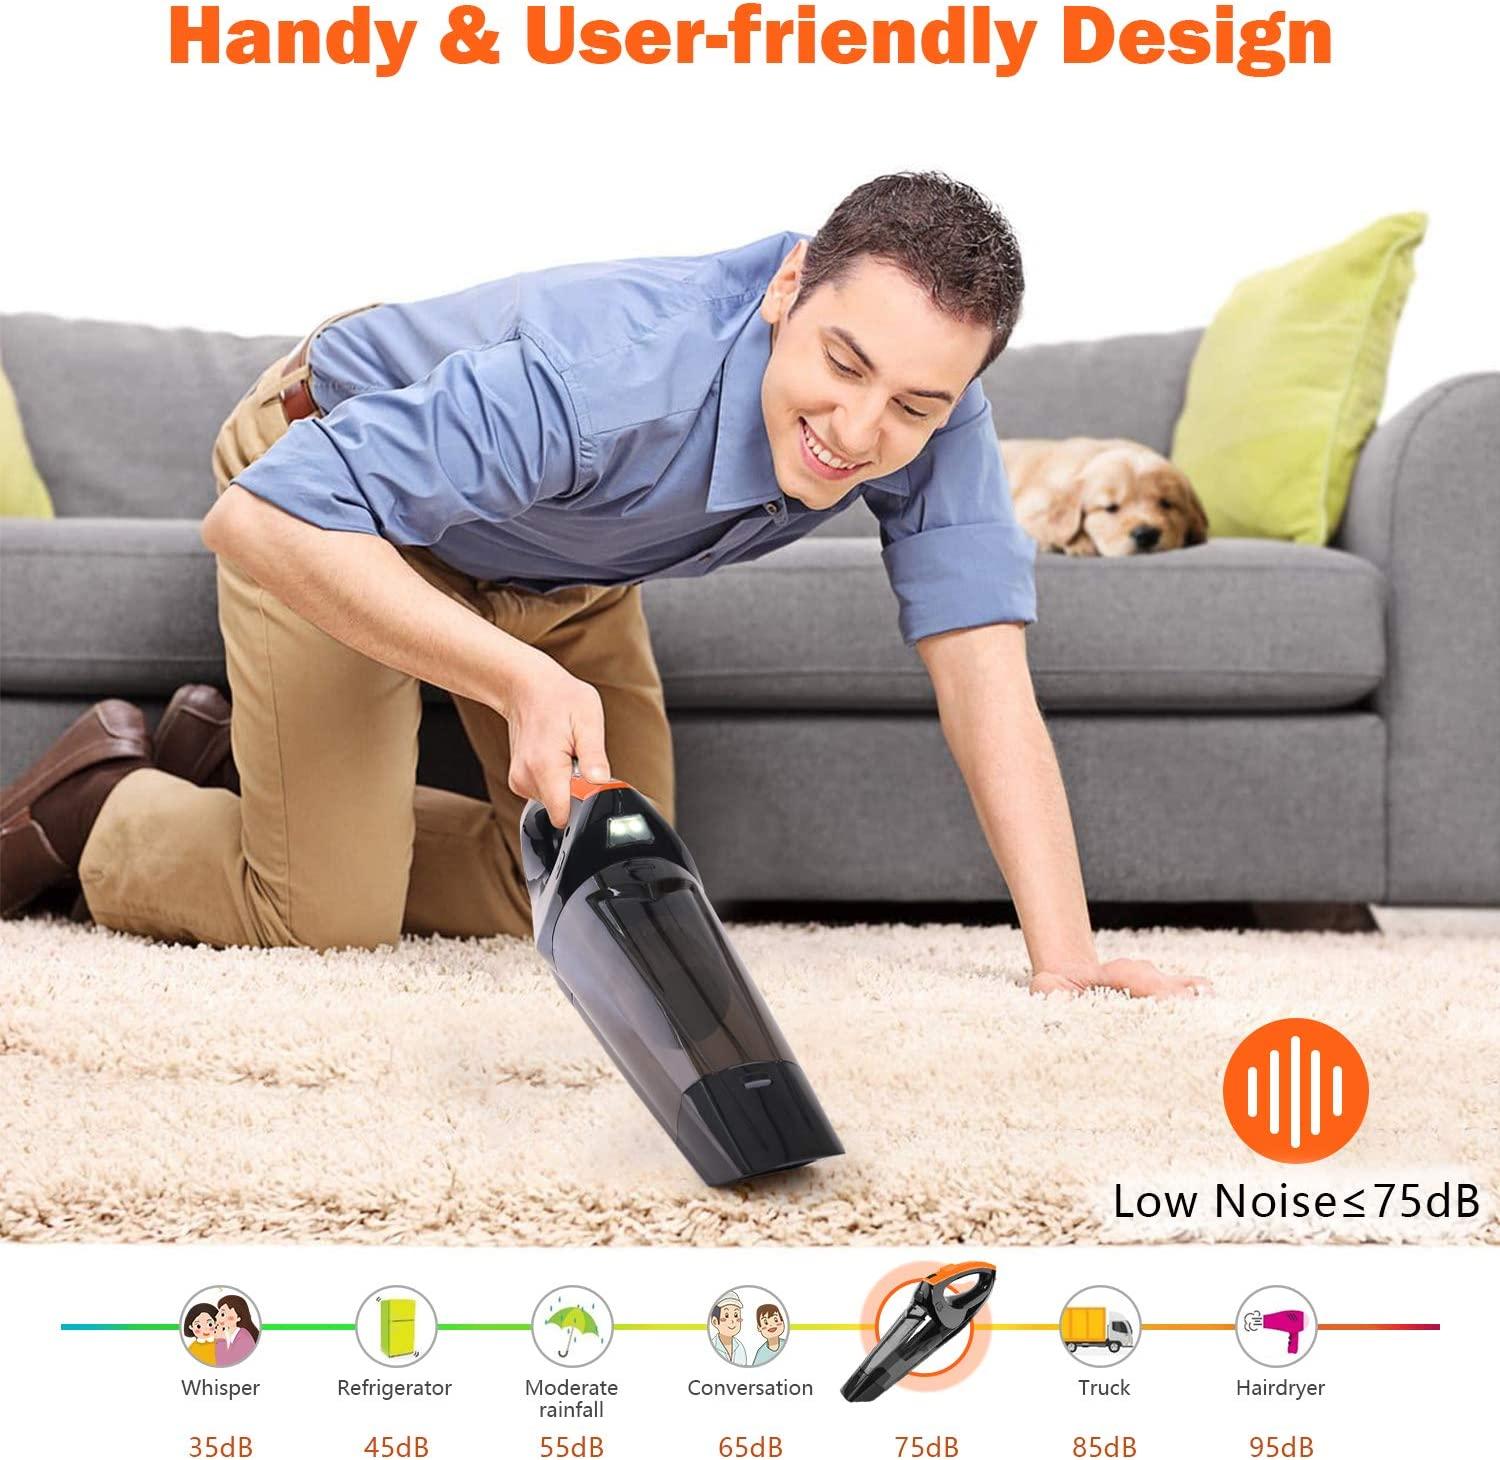 VACPOWER Handheld Vacuum Cleaner Cordless, Portable Hand Vacuum Powered by Li-ion Battery Rechargeable Quick Charge Tech, Mini Vacuum Cleaner with Strong Suction for Pet Hair, Home and Car Cleaning -